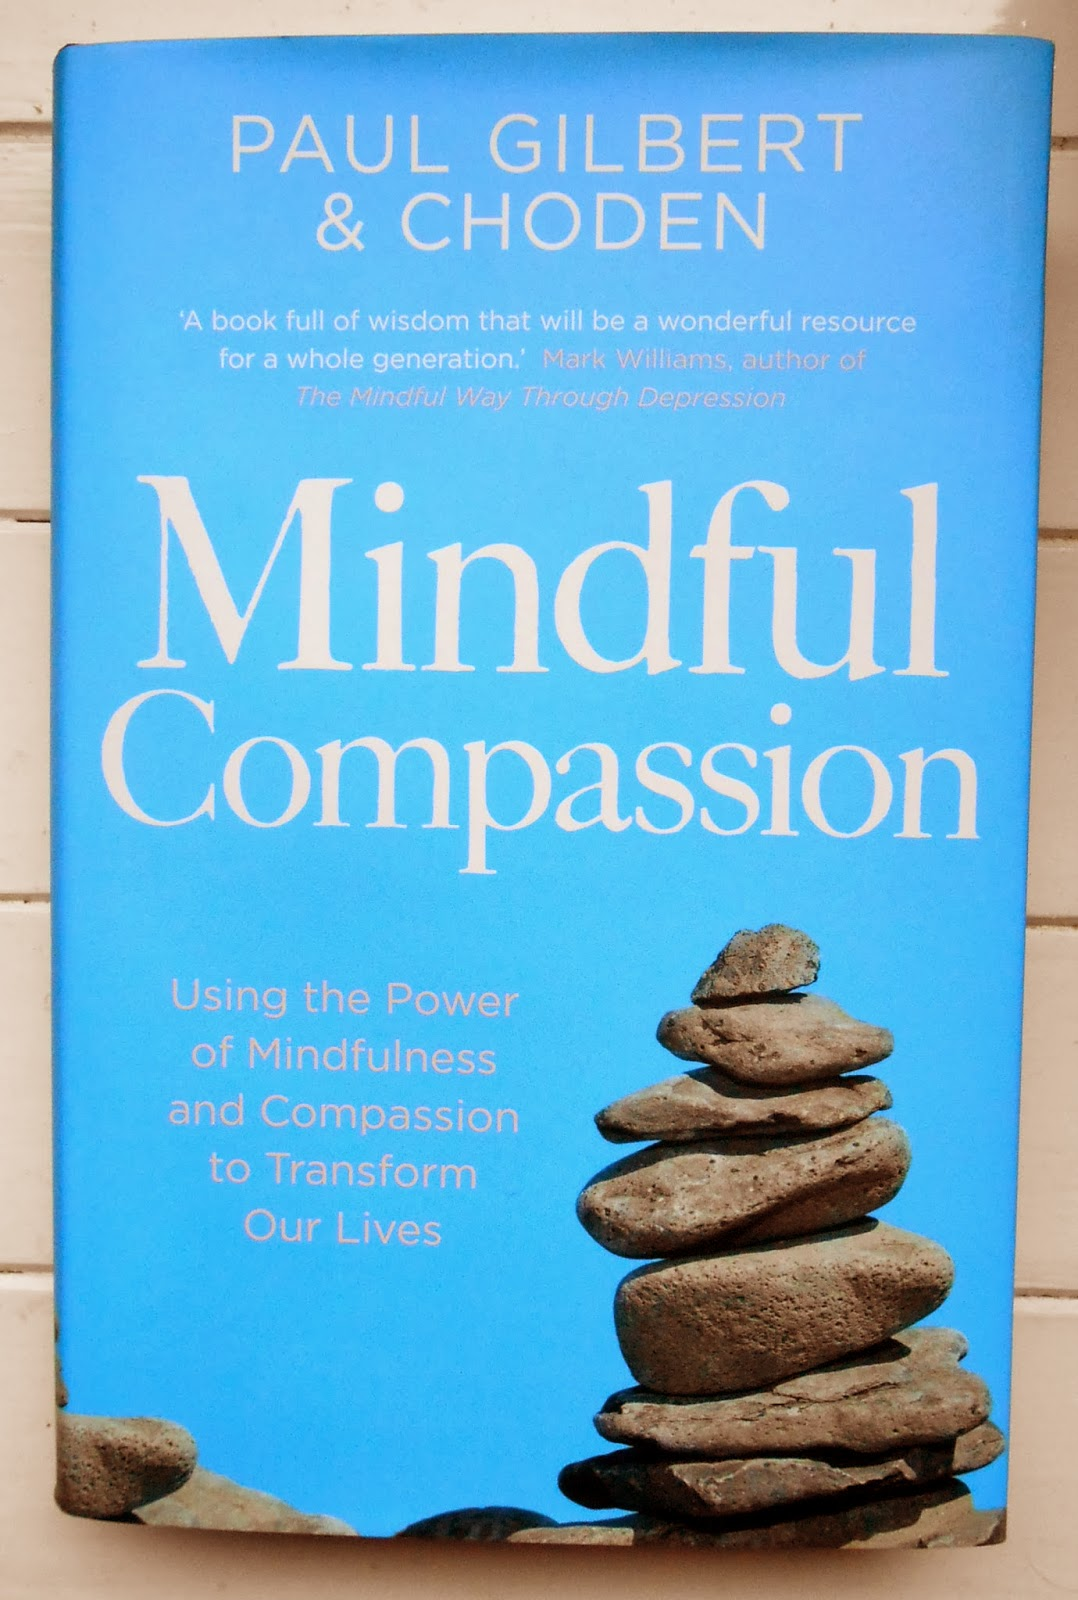 MINDFUL COMPASSION – Using the Power of Mindfulness and Compassion to Transform Our Lives.